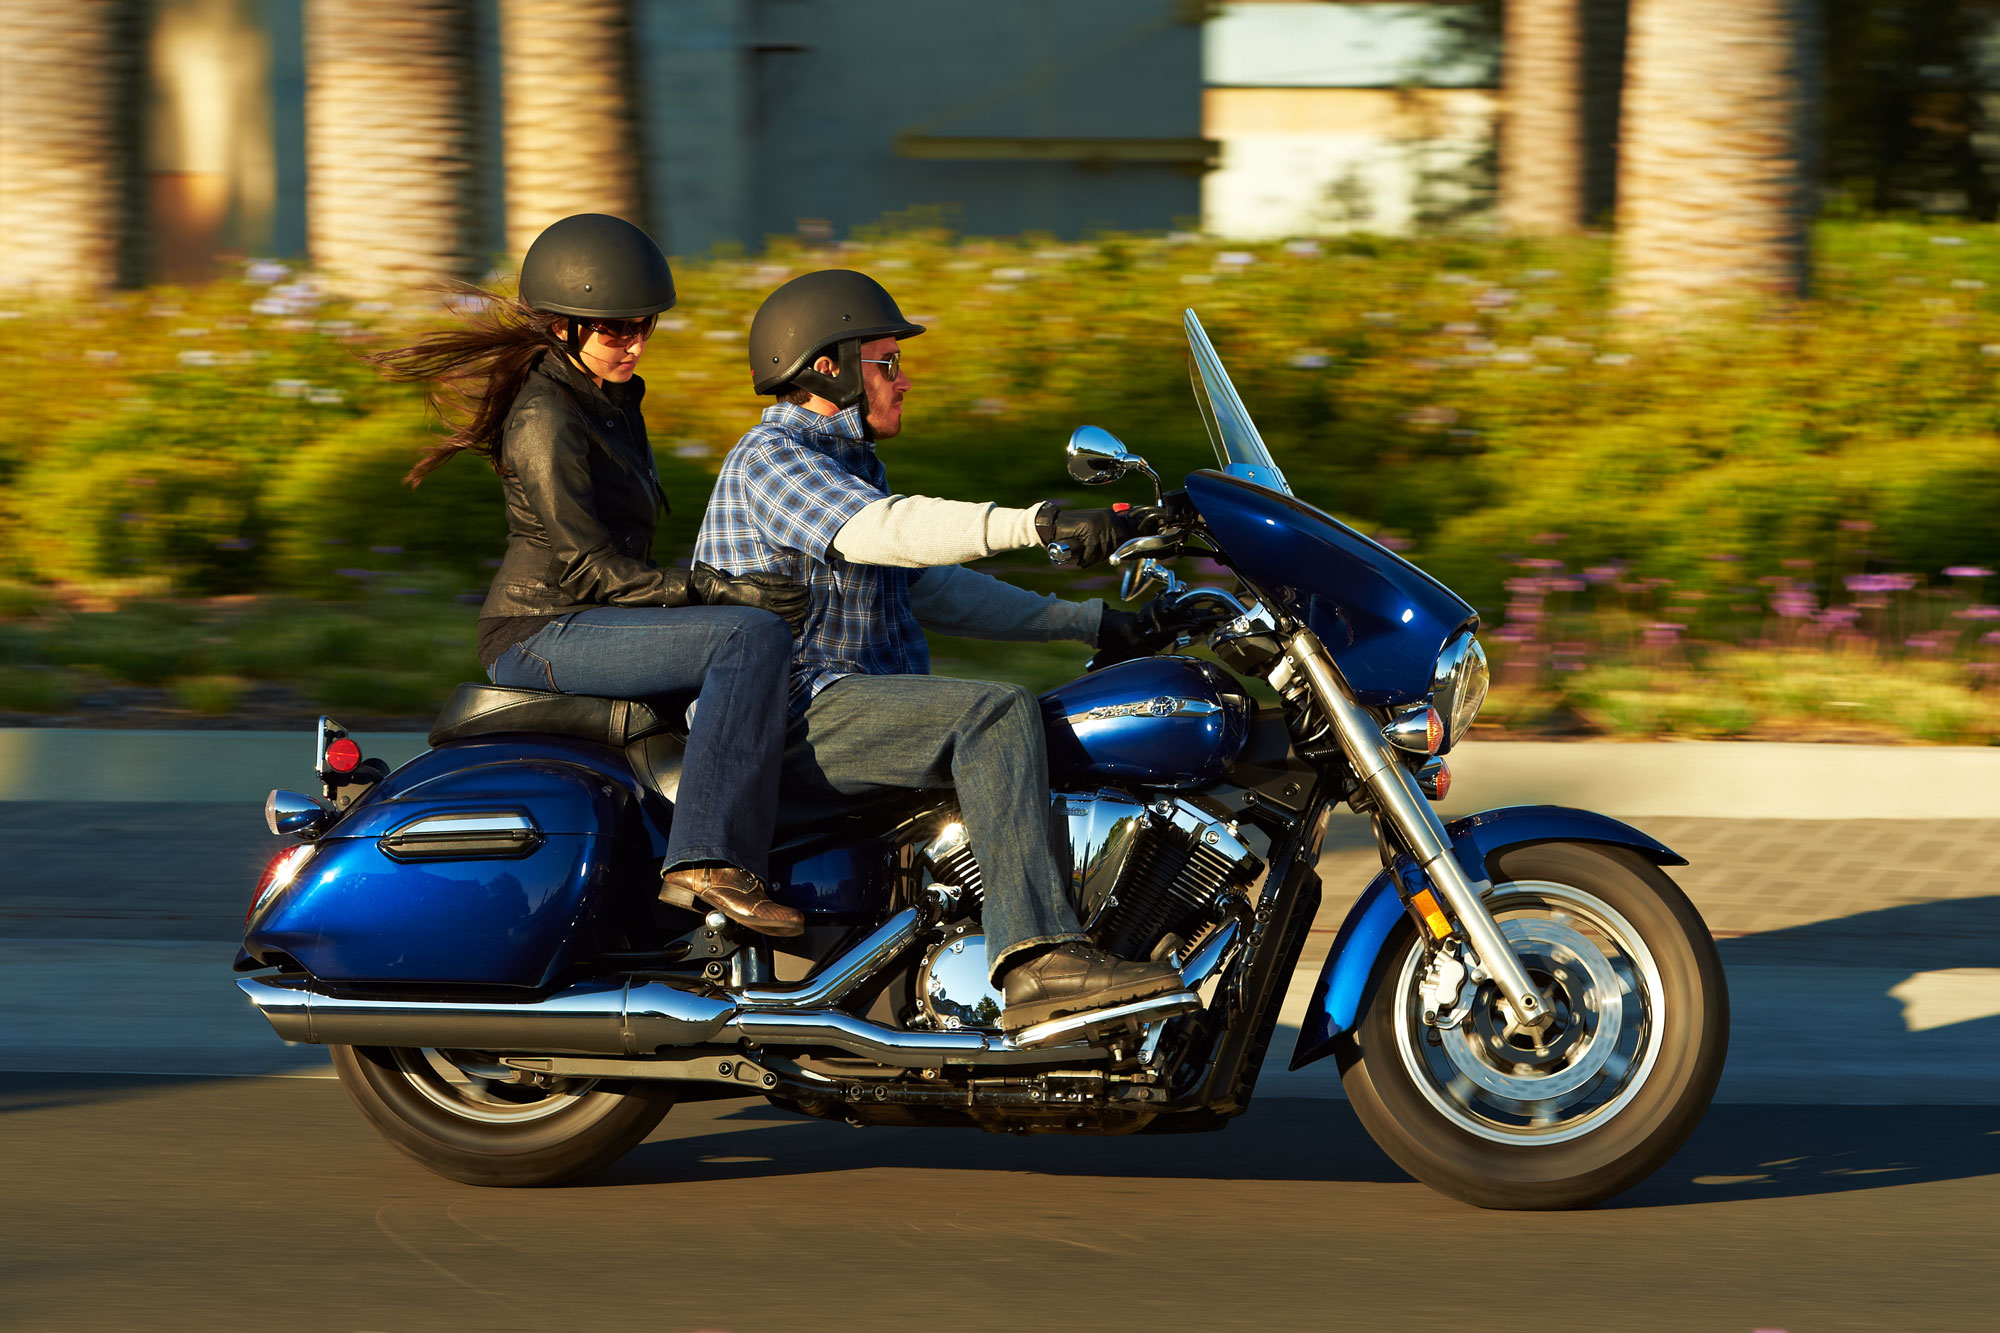 2013 Yamaha V-Star 1300 Deluxe Review